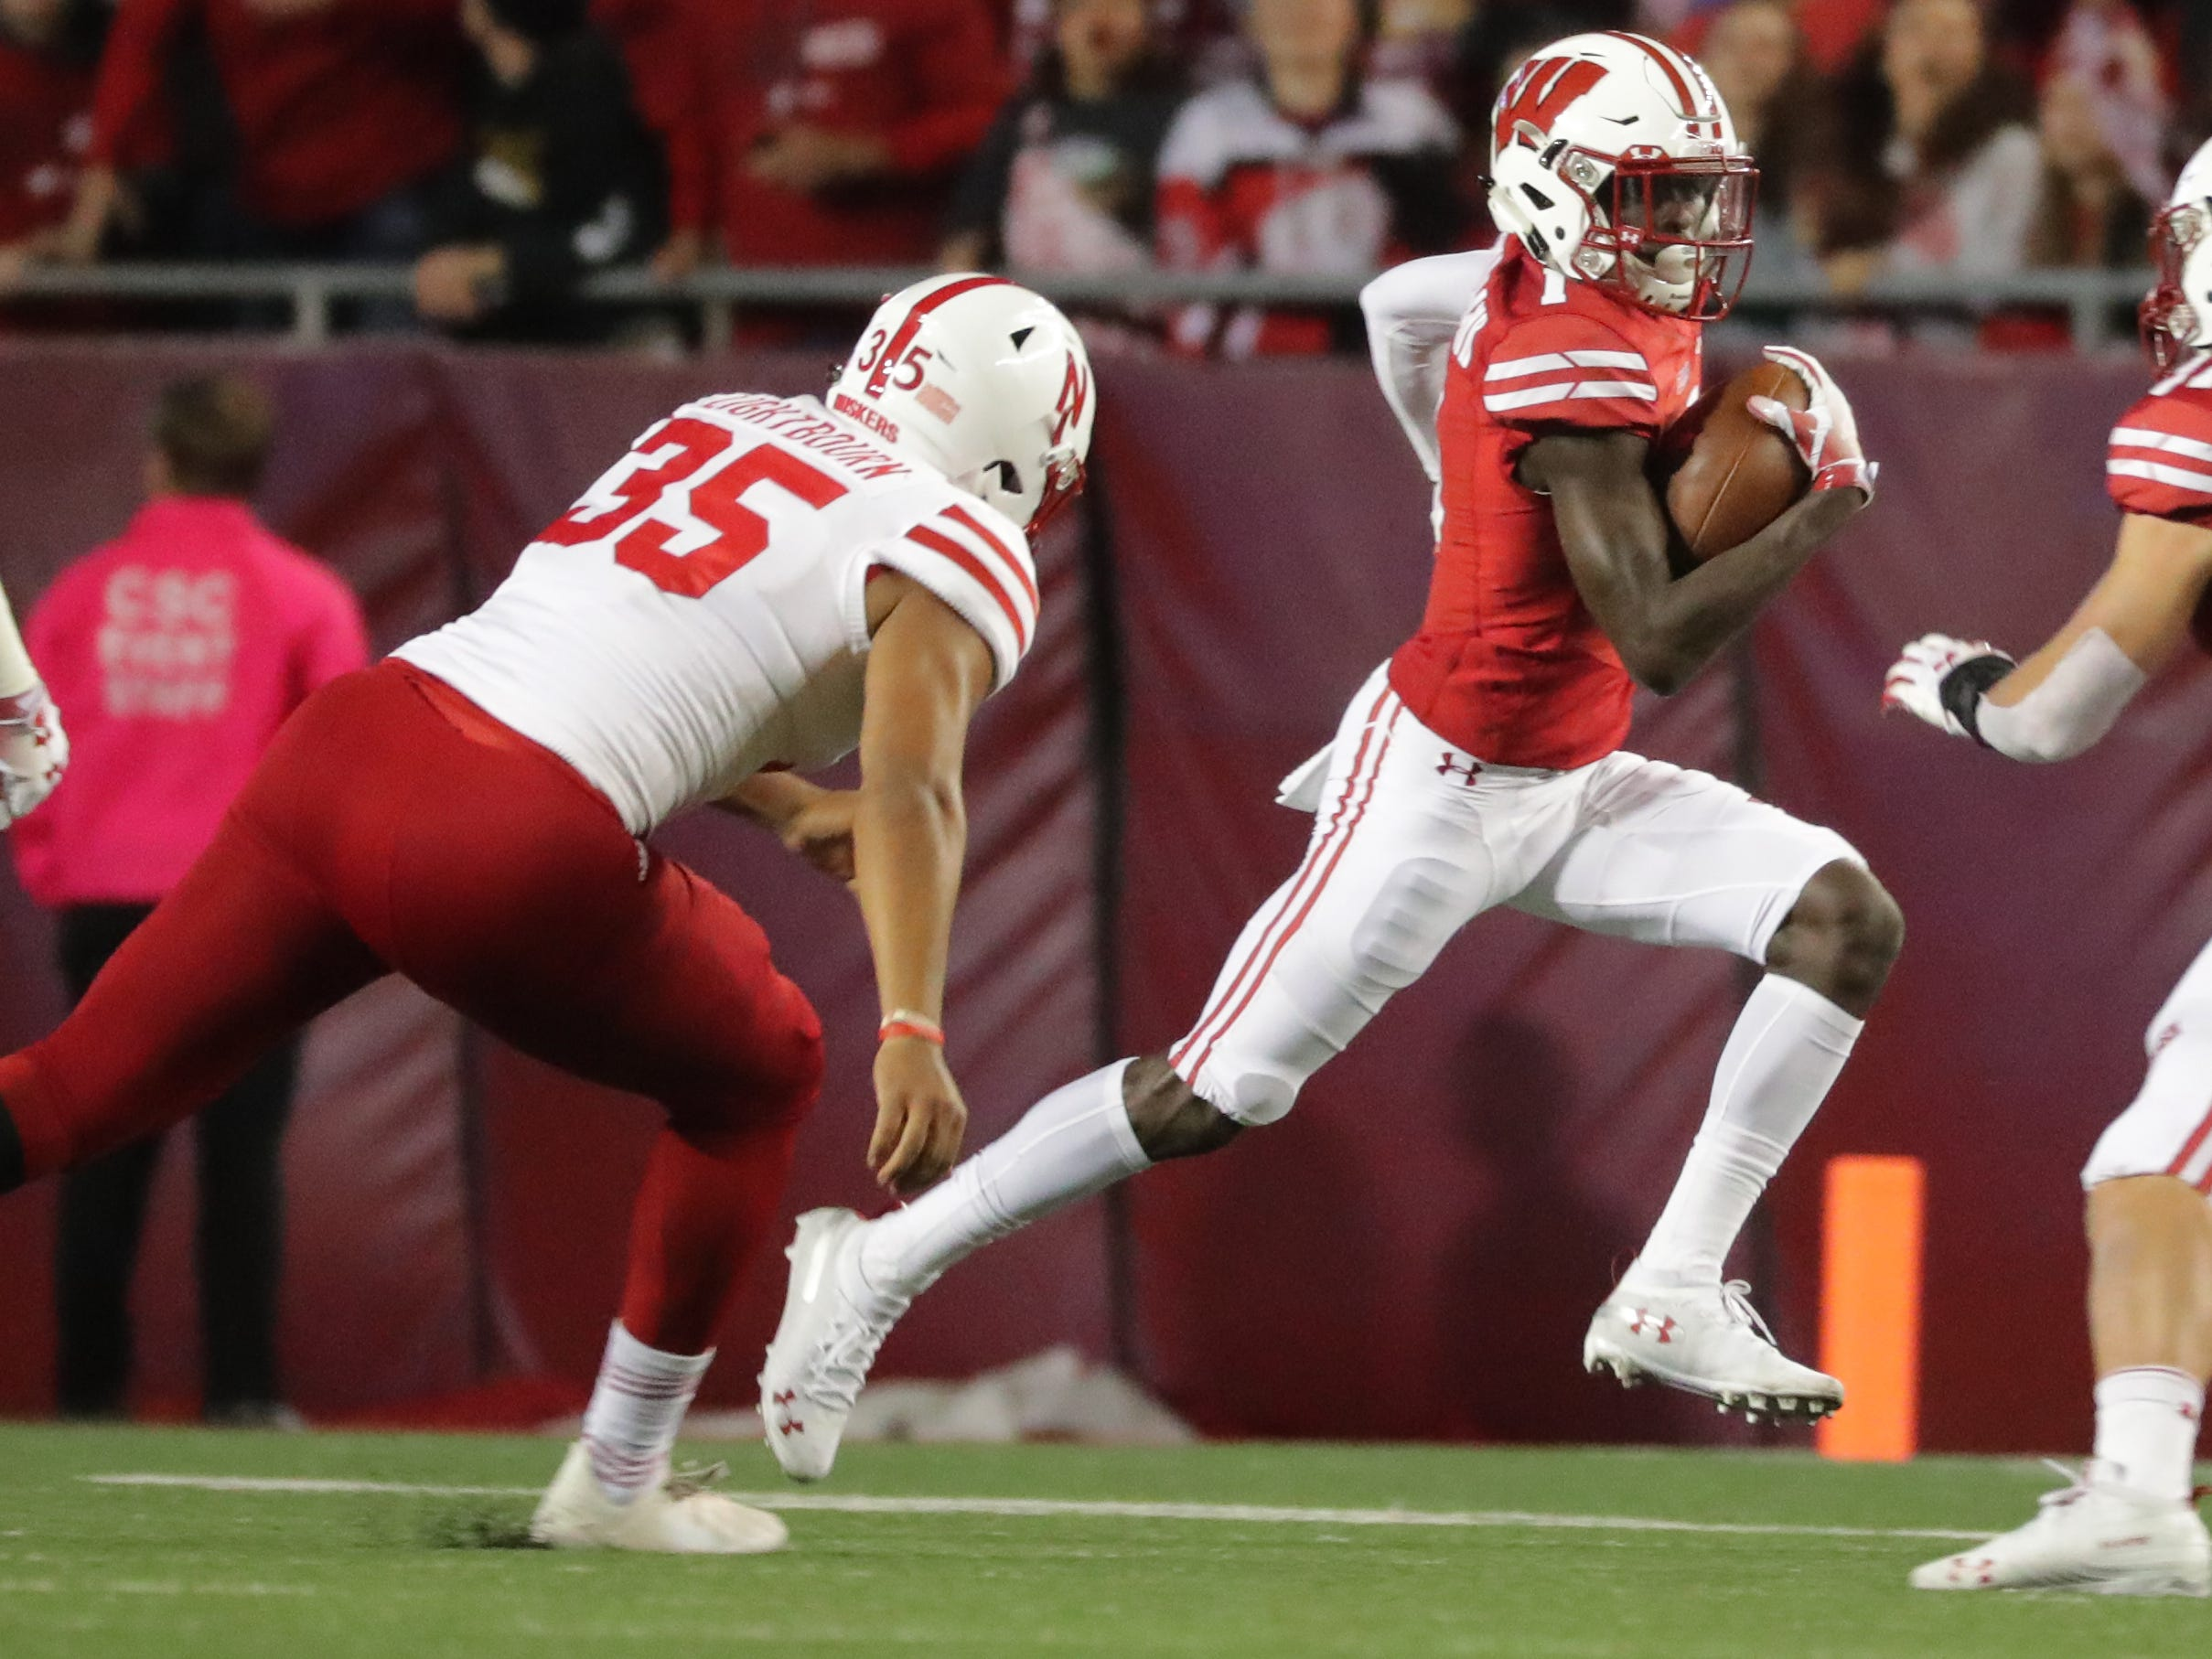 Nebraska kicker Caleb Lightbourn is able to clip to heel of Aron Cruickshank of the Badgers for a touchdown saving tackle on a kickoff return during the second quarter Saturday night.